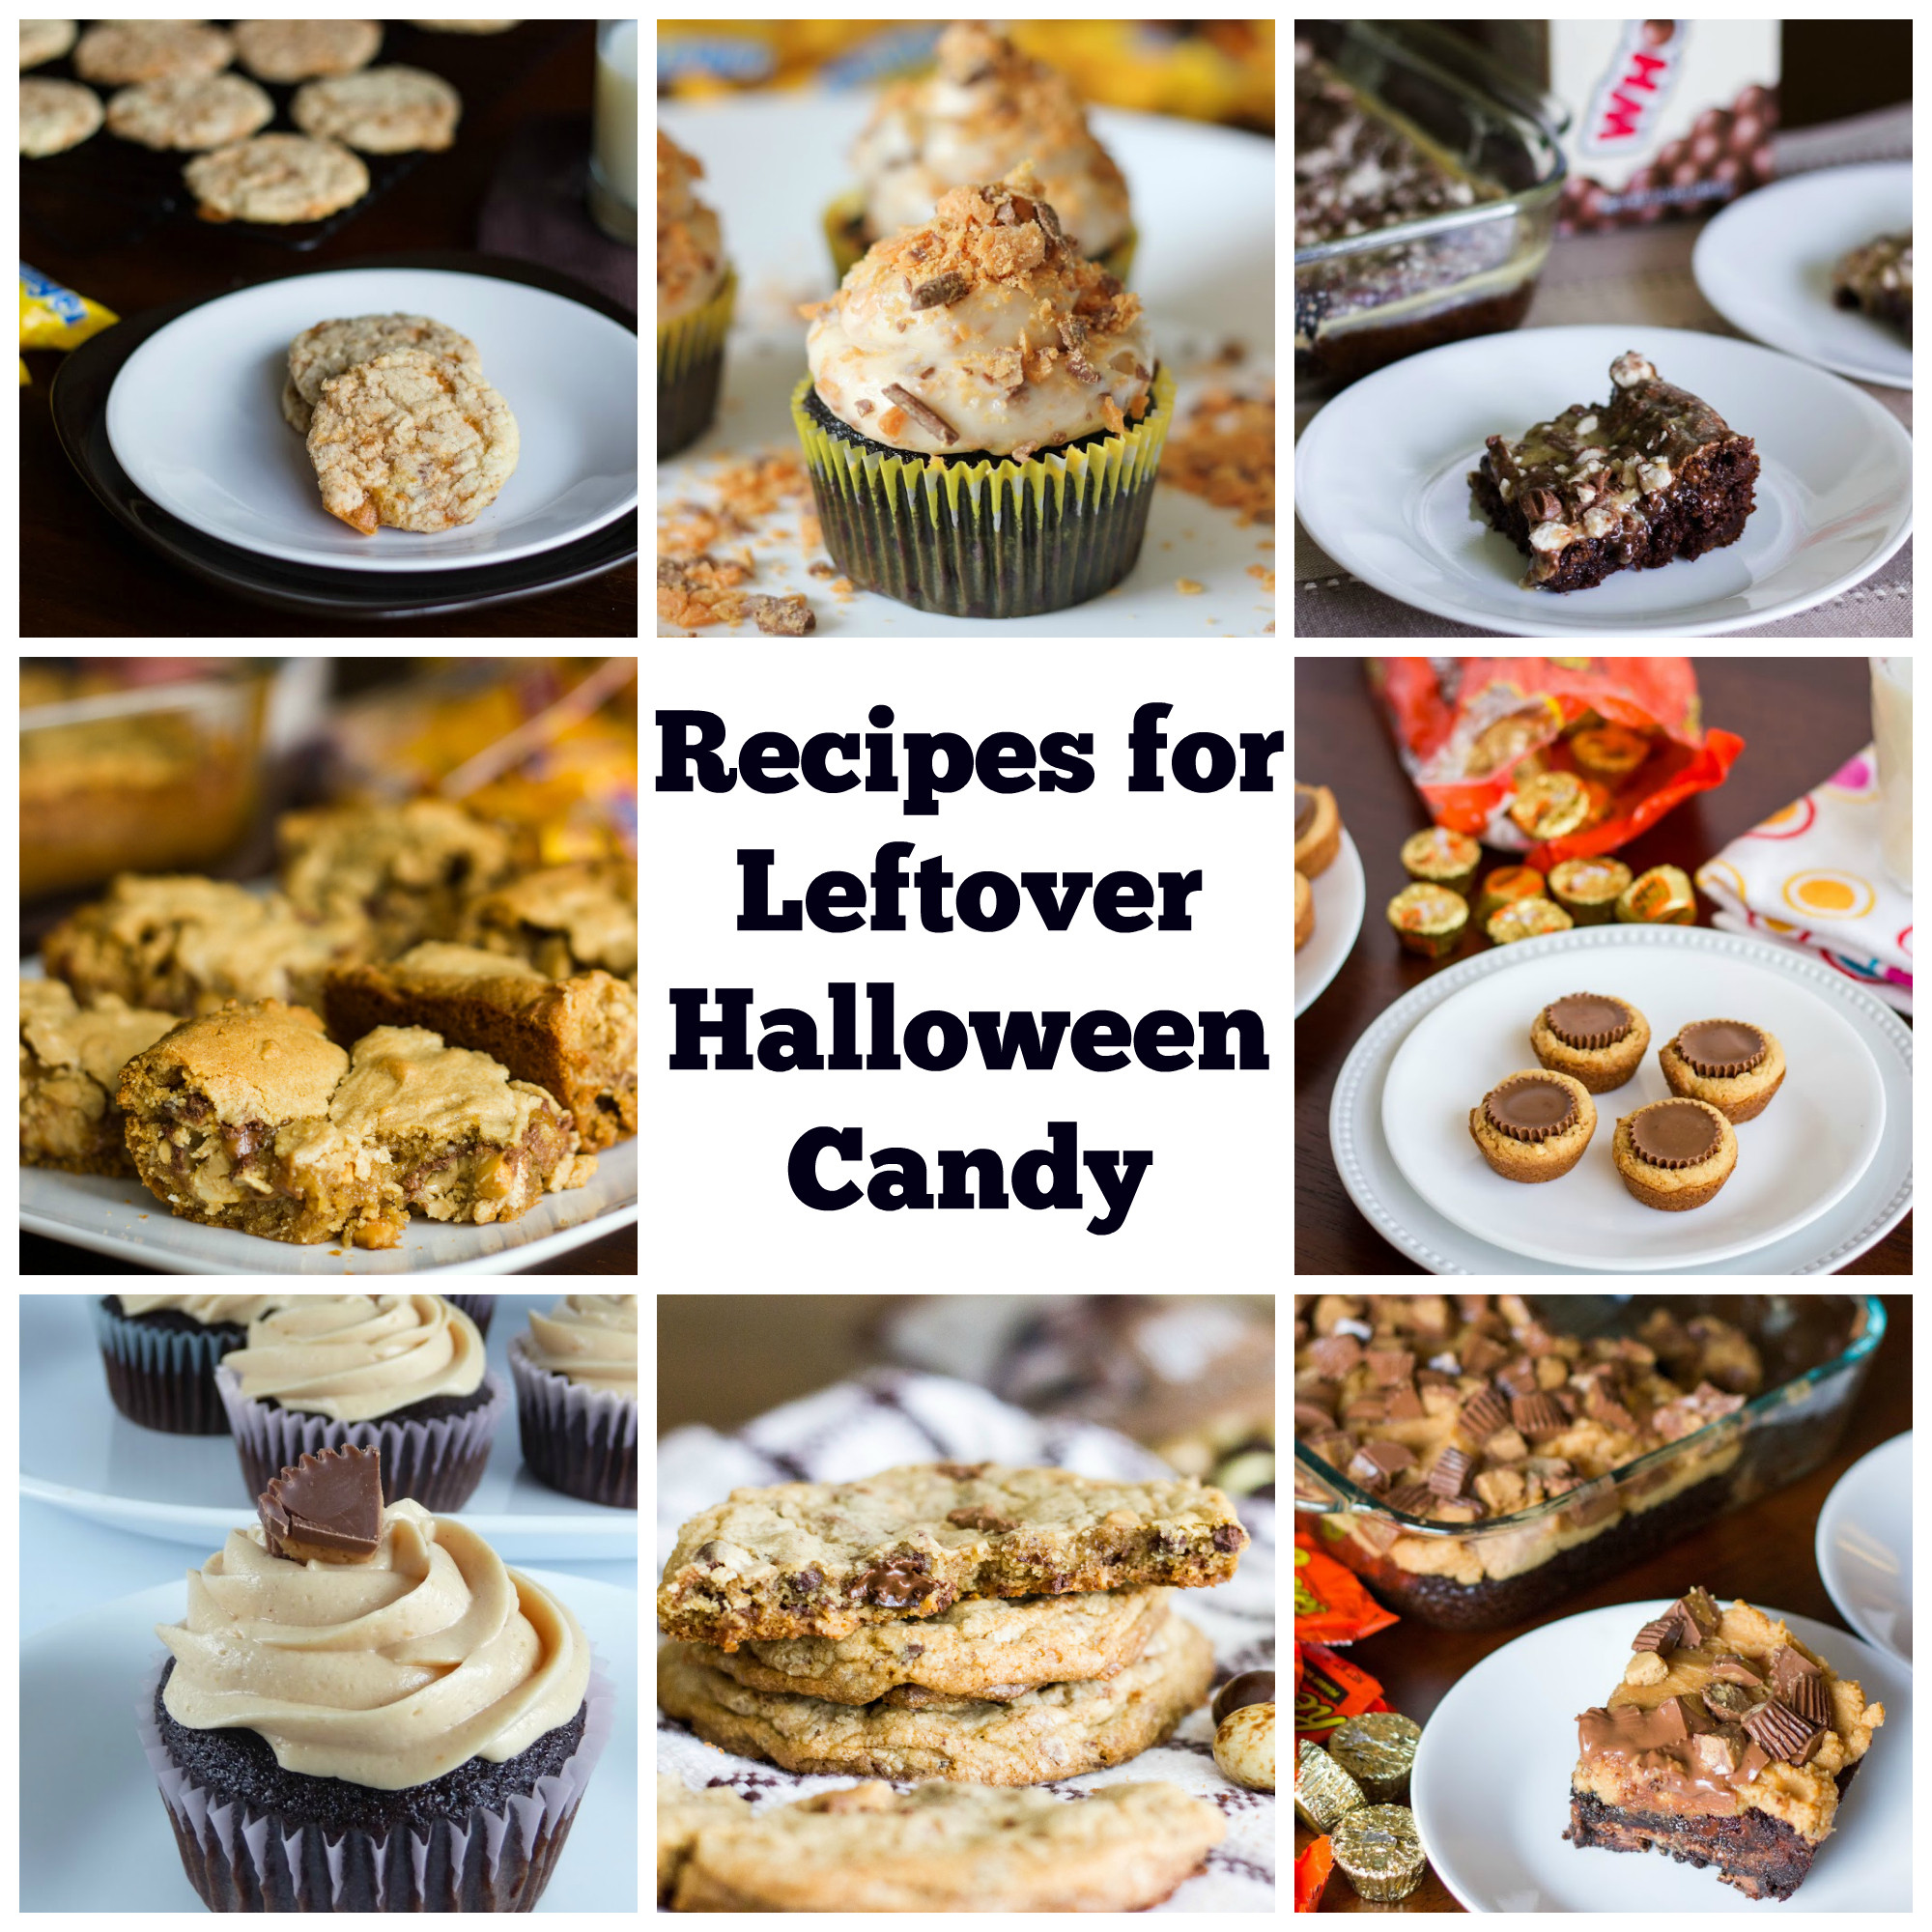 Leftover Halloween Candy Recipes  Recipes for Leftover Halloween Candy Kendra s Treats